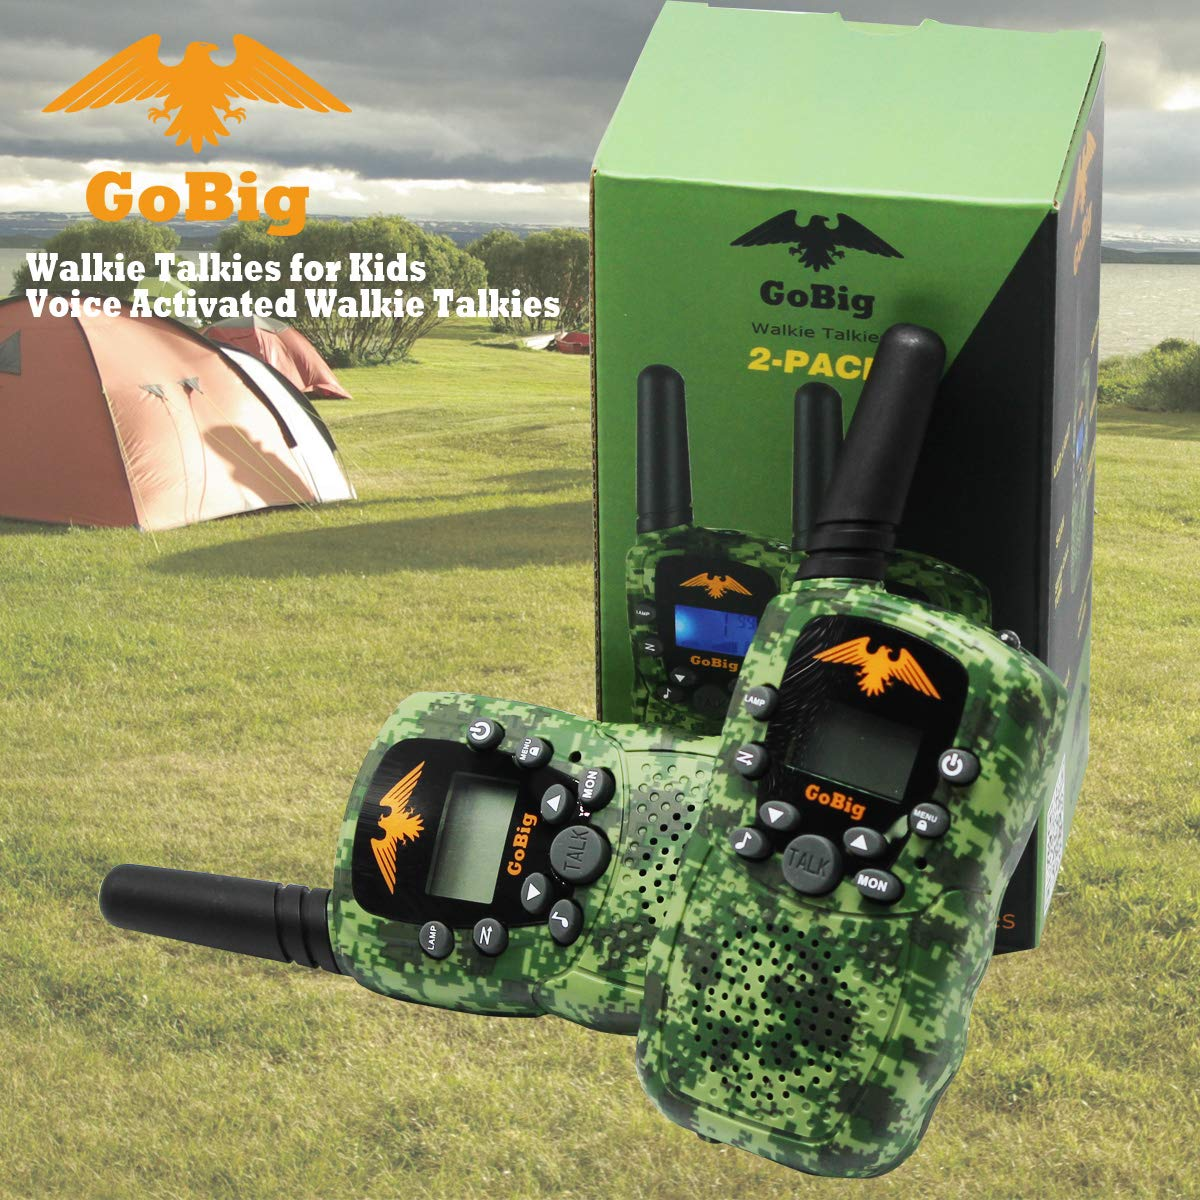 GoBig Walkie Talkies for Kids Voice Activated Walkie Talkies for Adults and Kids 3 Mile Range 2 Way Radio Walkie Talkies Built in Flash Light Camo Green (2 Pack) by GoBig (Image #7)